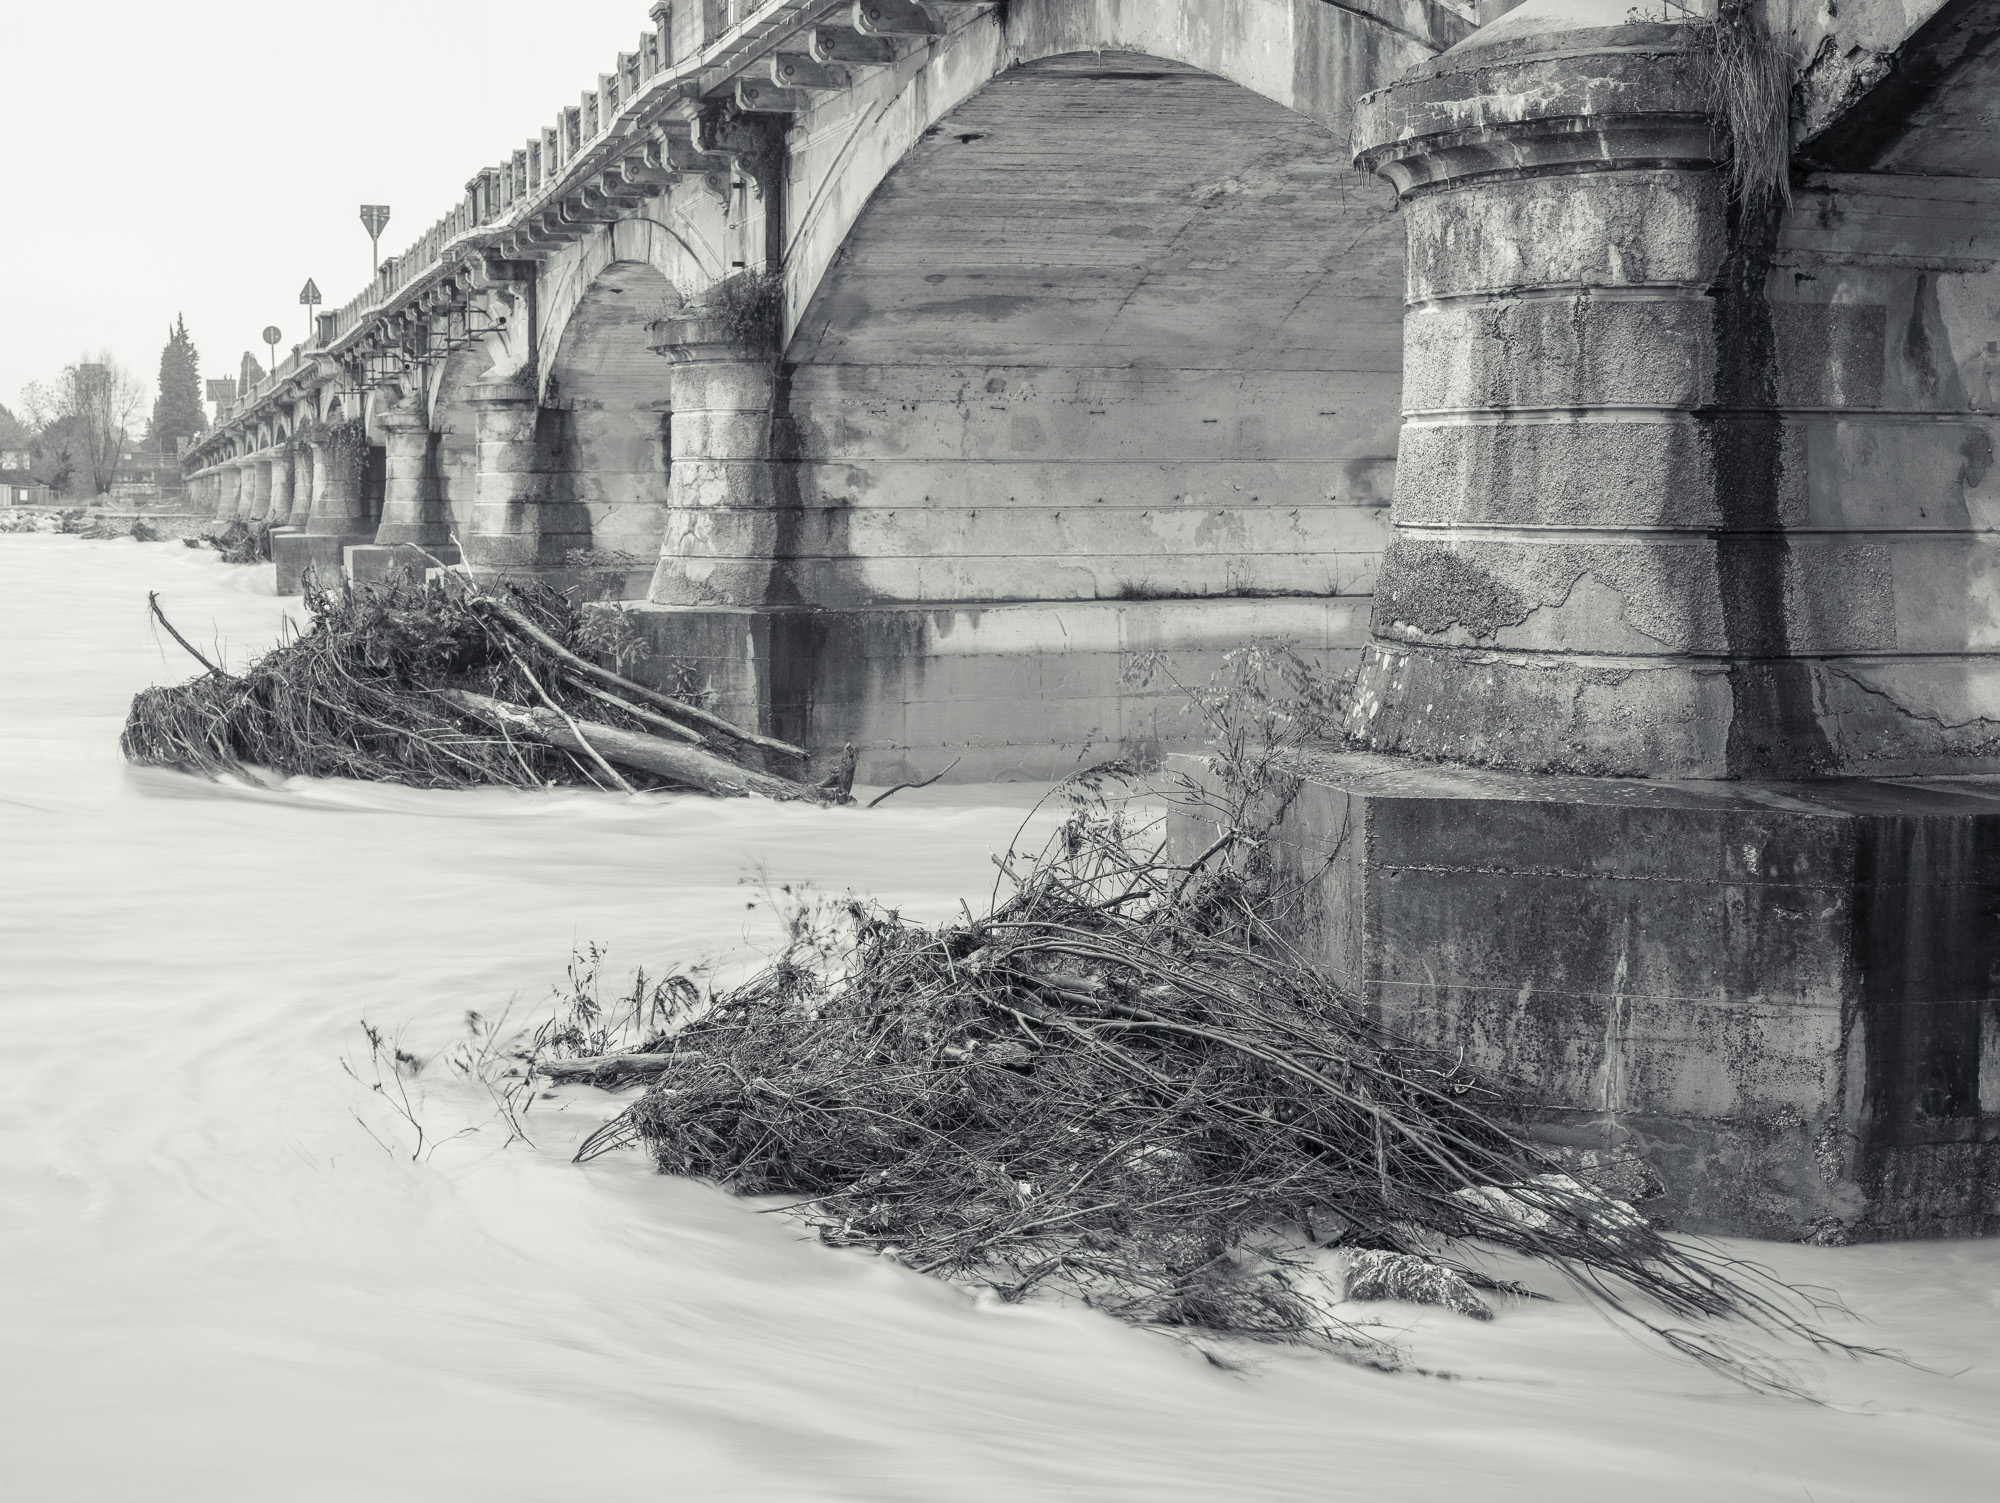 Fiume Piave: The Flood   Treviso - Italy // September 2014